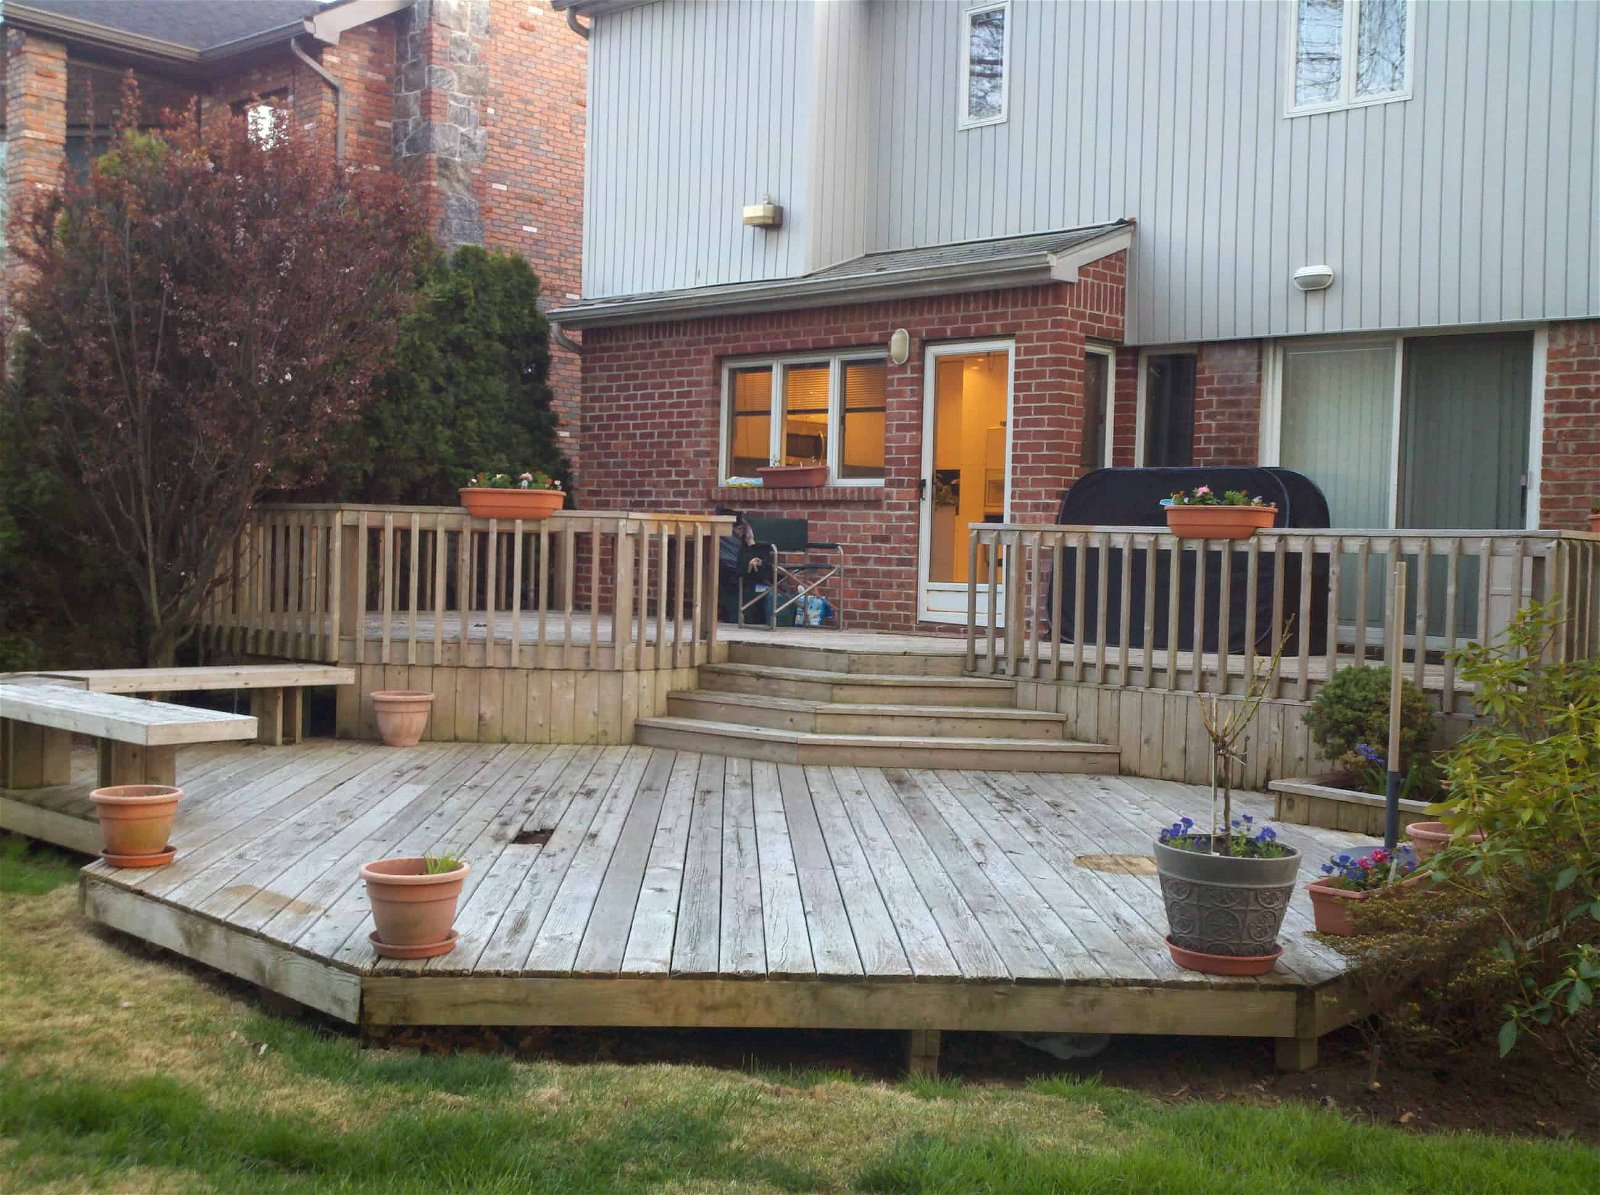 20.SIMPHOME.COM A sloped backyard deck ideas air home products easy and inspiring for backyard deck ideas